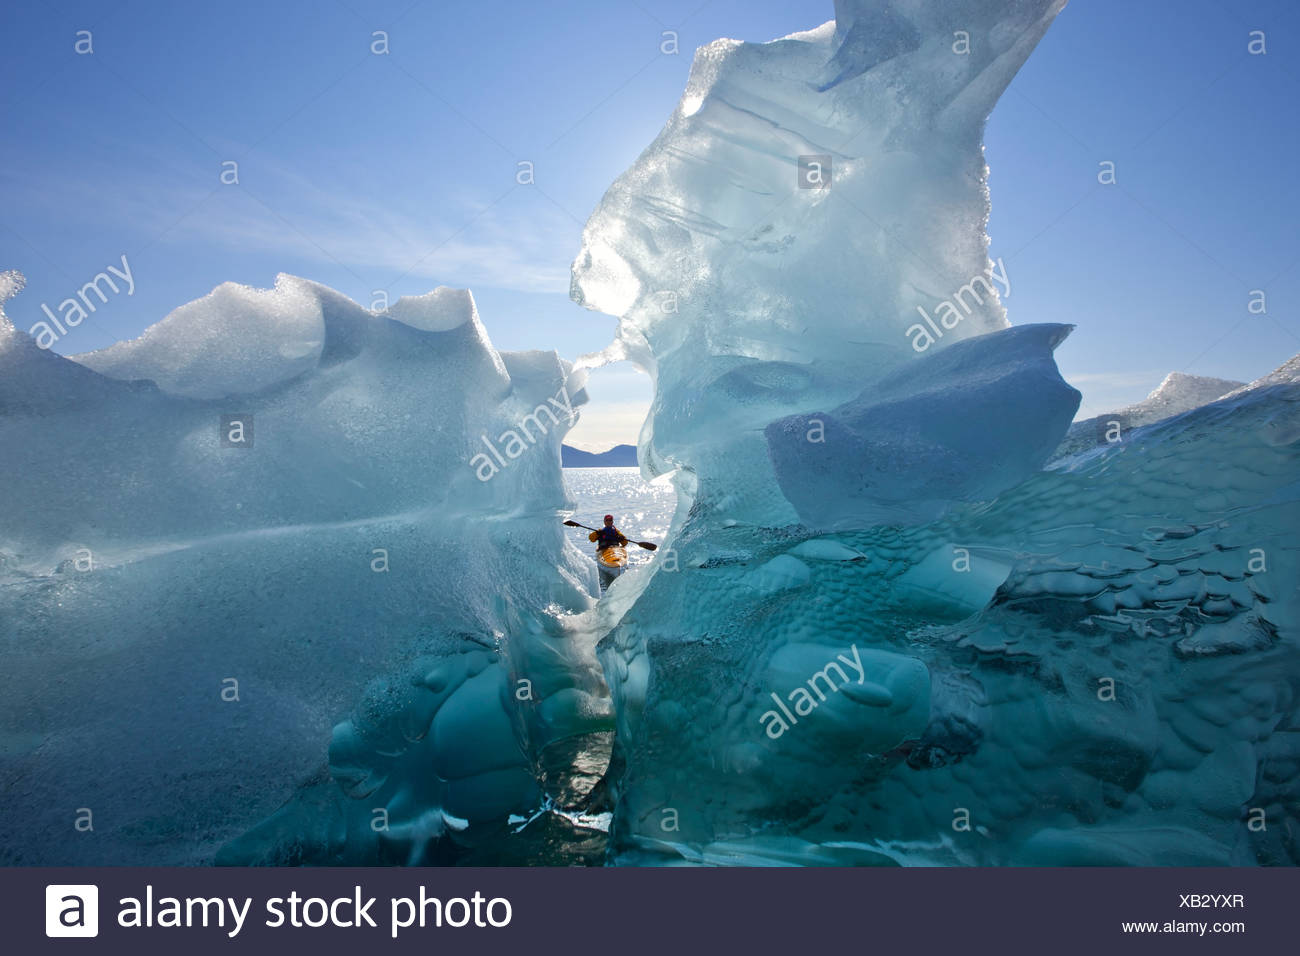 Sea Kayaker views large icebergs in Stephens Passage, Tracy Arm-Fords Terror Wilderness, Inside Passage, Alaska - Stock Image